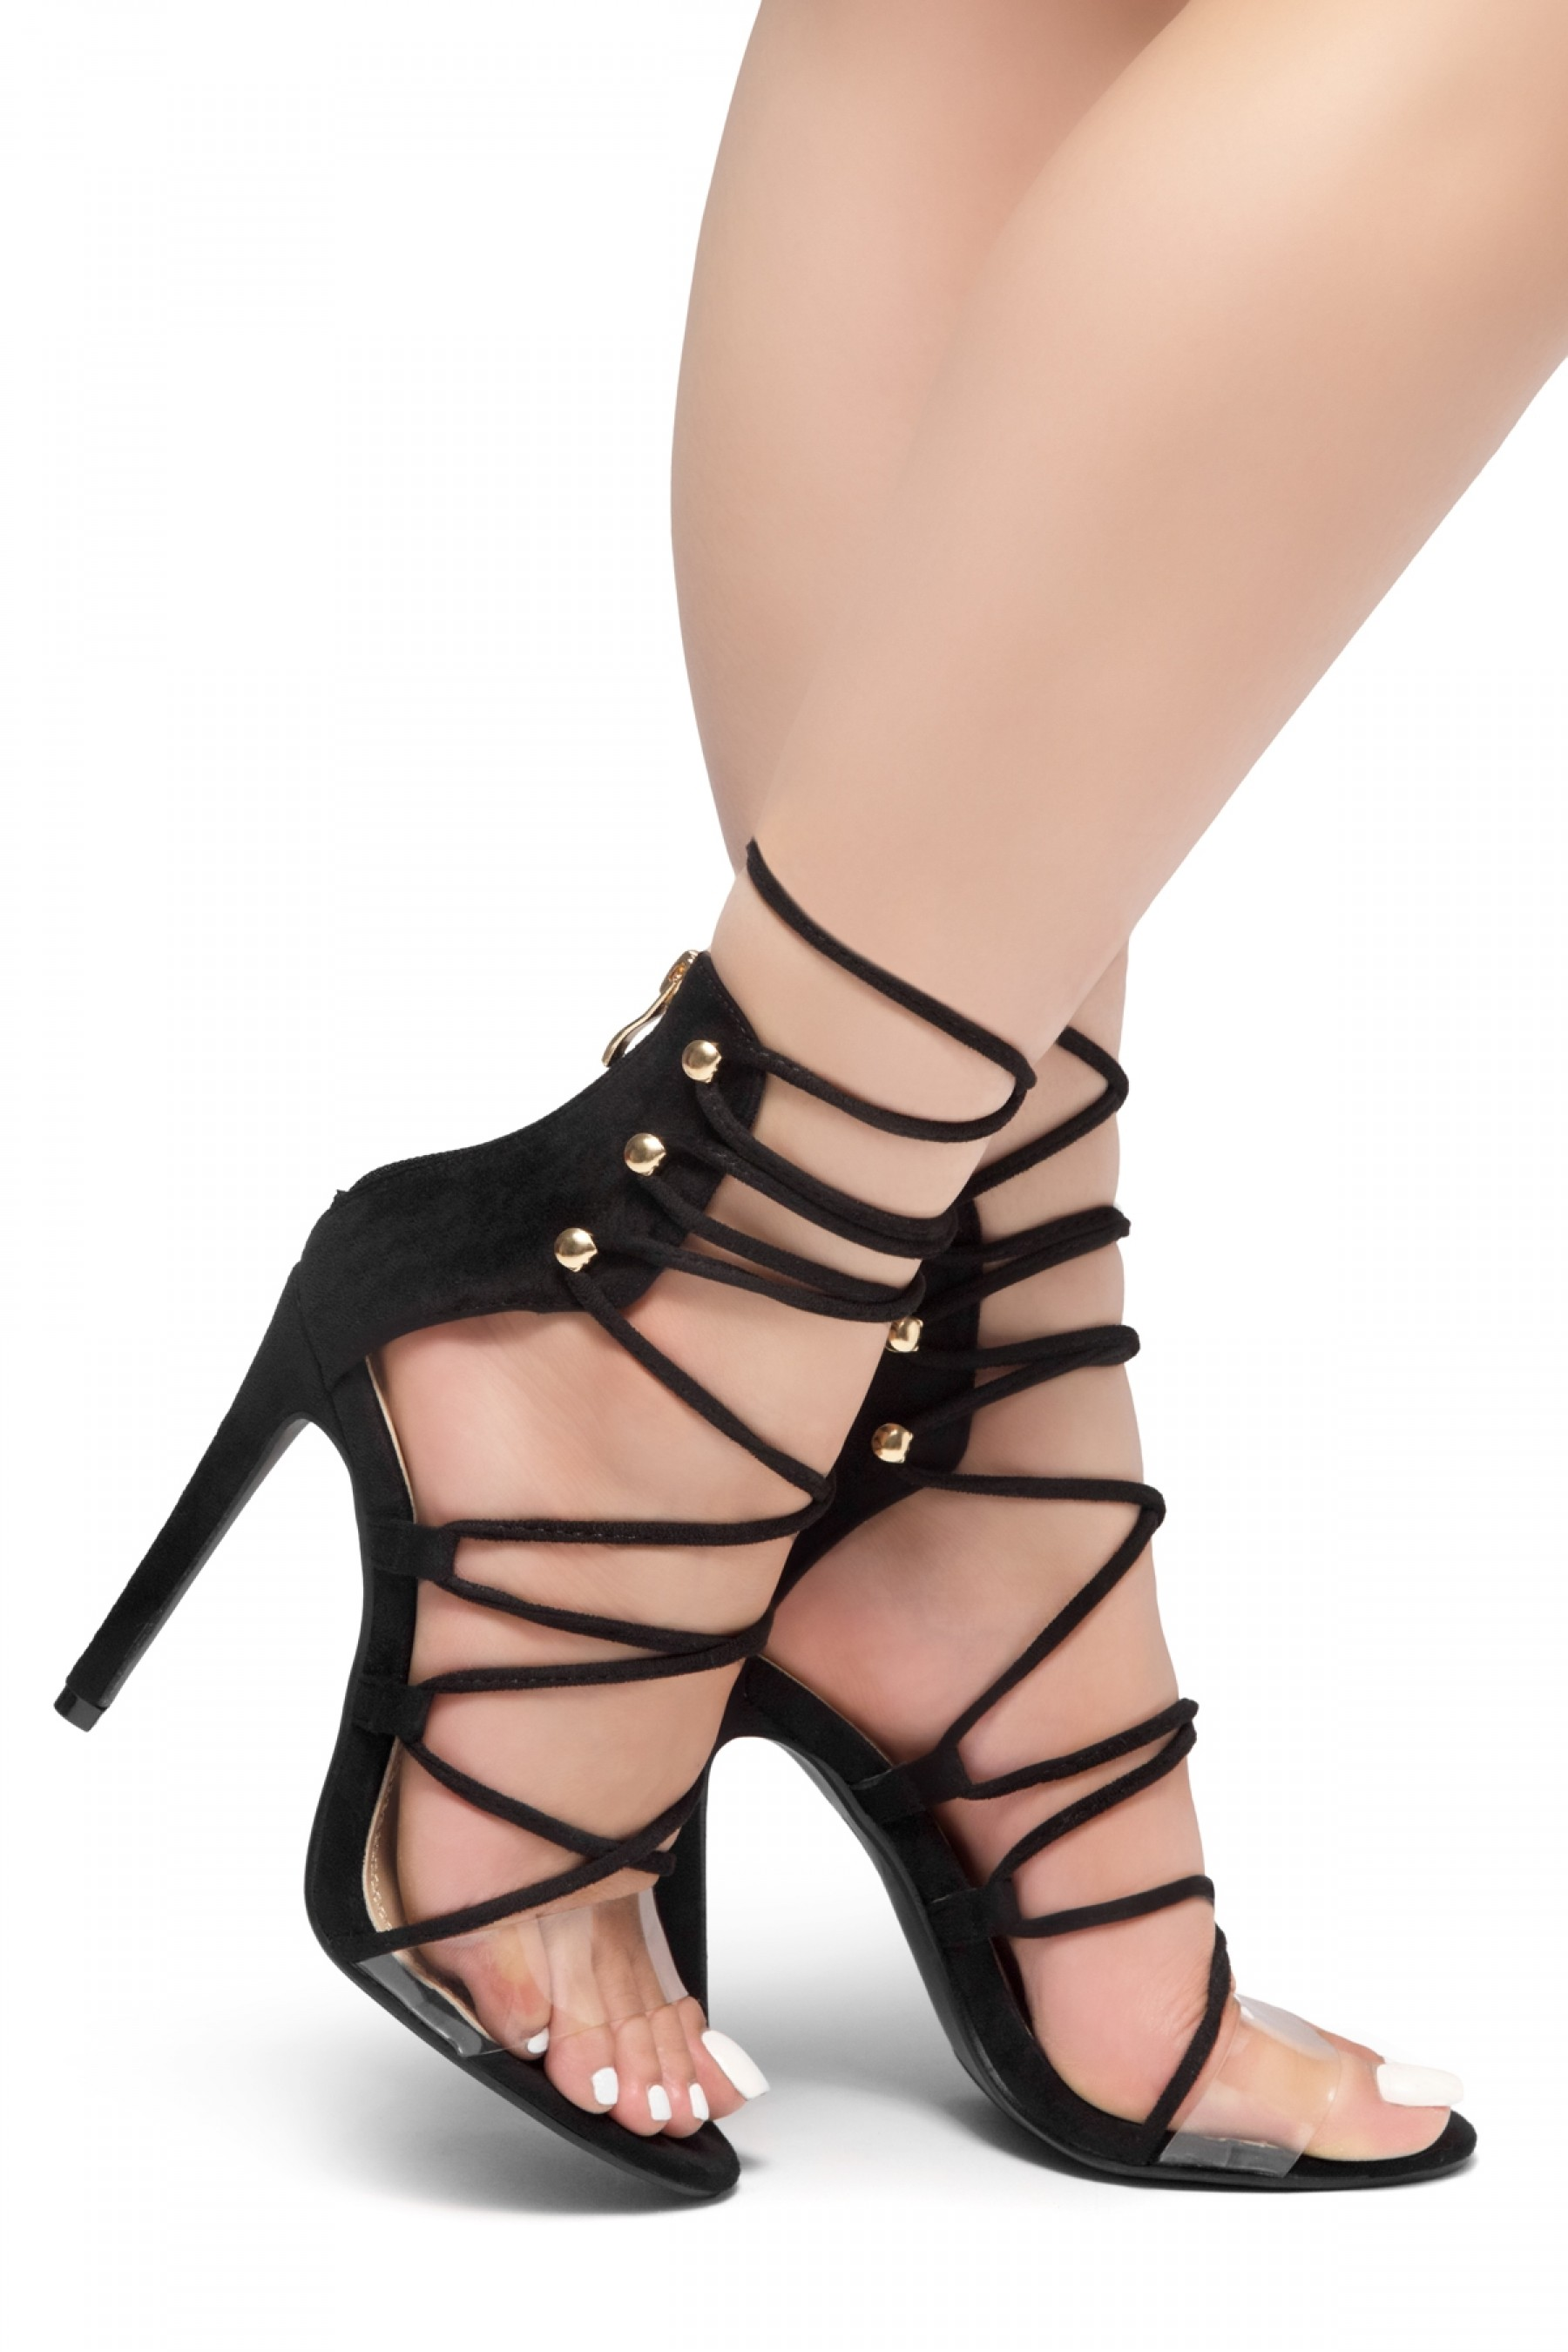 HerStyle LOVELY LADY-Stiletto heel, front lace-up, back zipper sandals (Black)